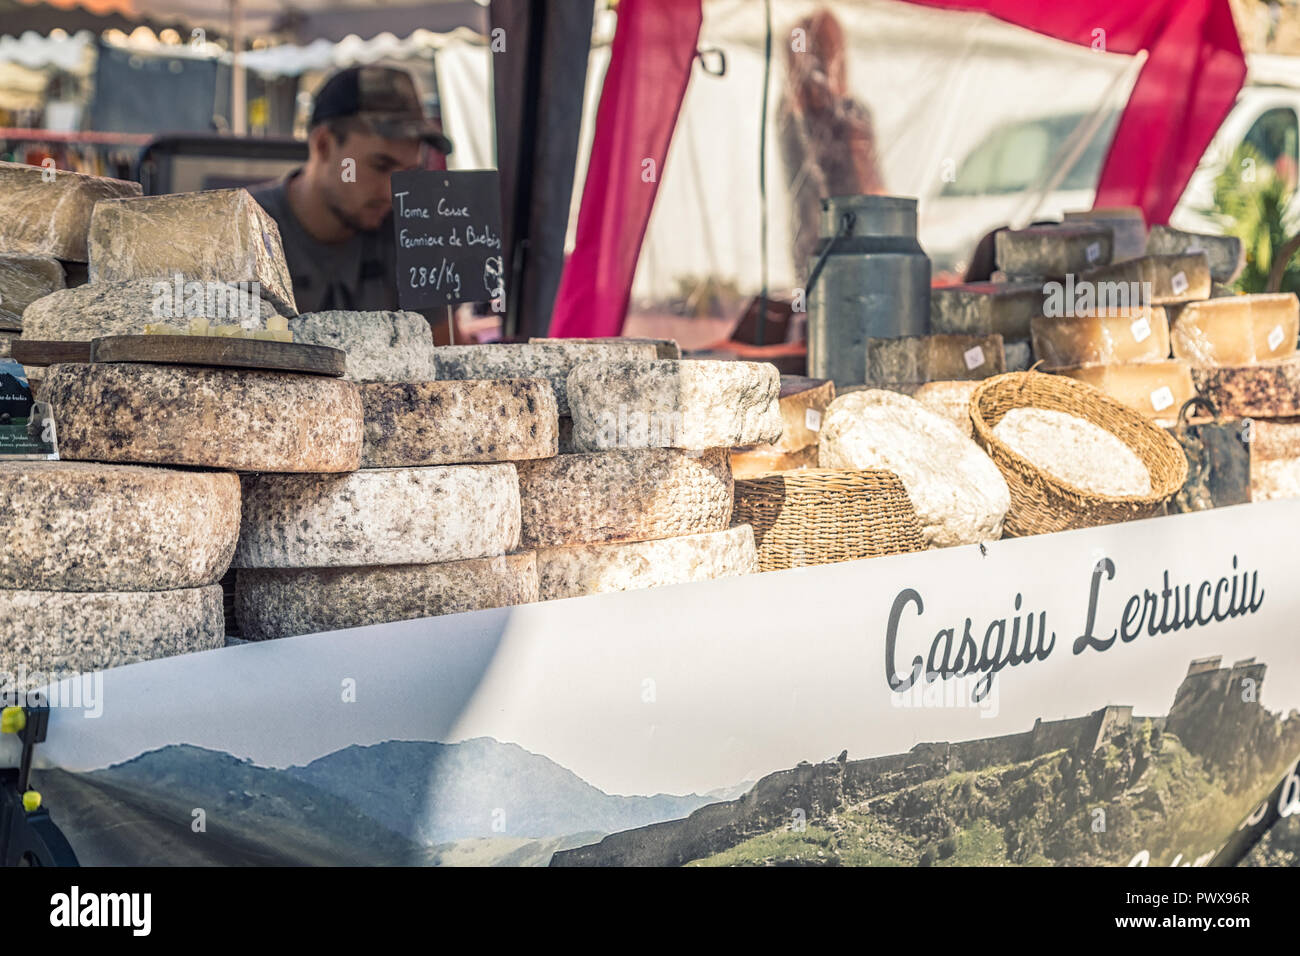 L'Ile Rousse, Corsica - 30th September 2018. Local cheeses are displayed for sale at an artisan fair in L'Ile Rousse in the Balagne region of Corsica - Stock Image